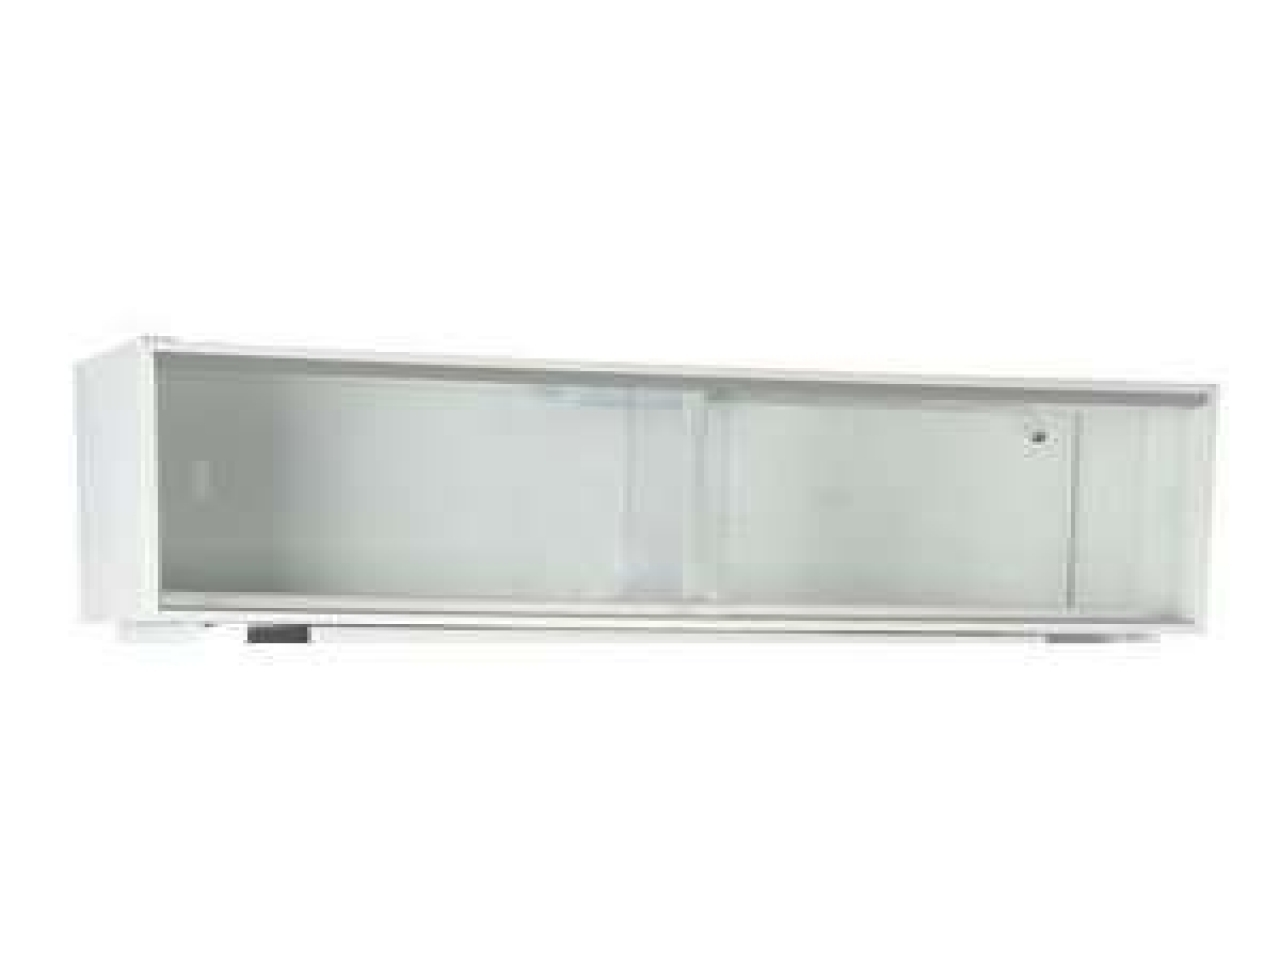 Wall Mounted Cabinets With Sliding Doors1280 X 960